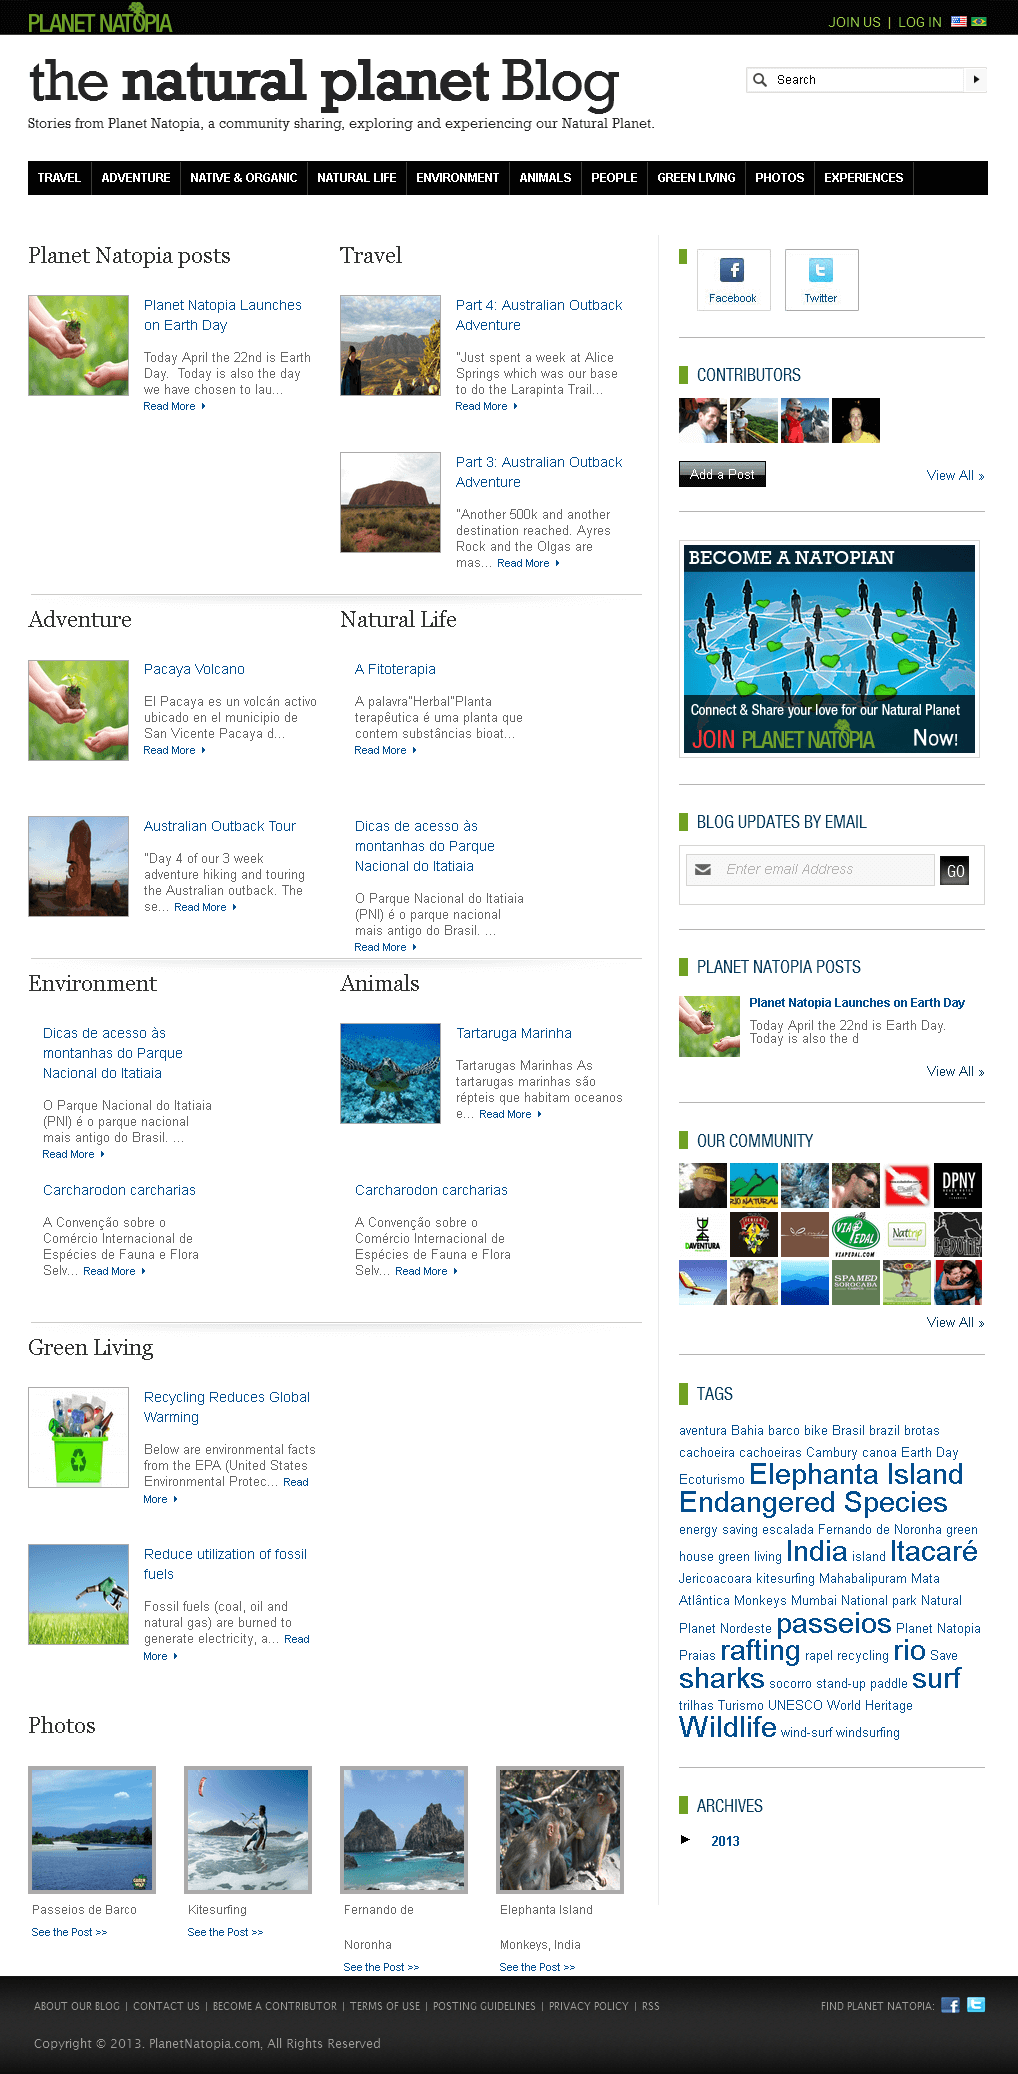 Website for Blog About Natural Planet 'Planet Natopia' Using PHP